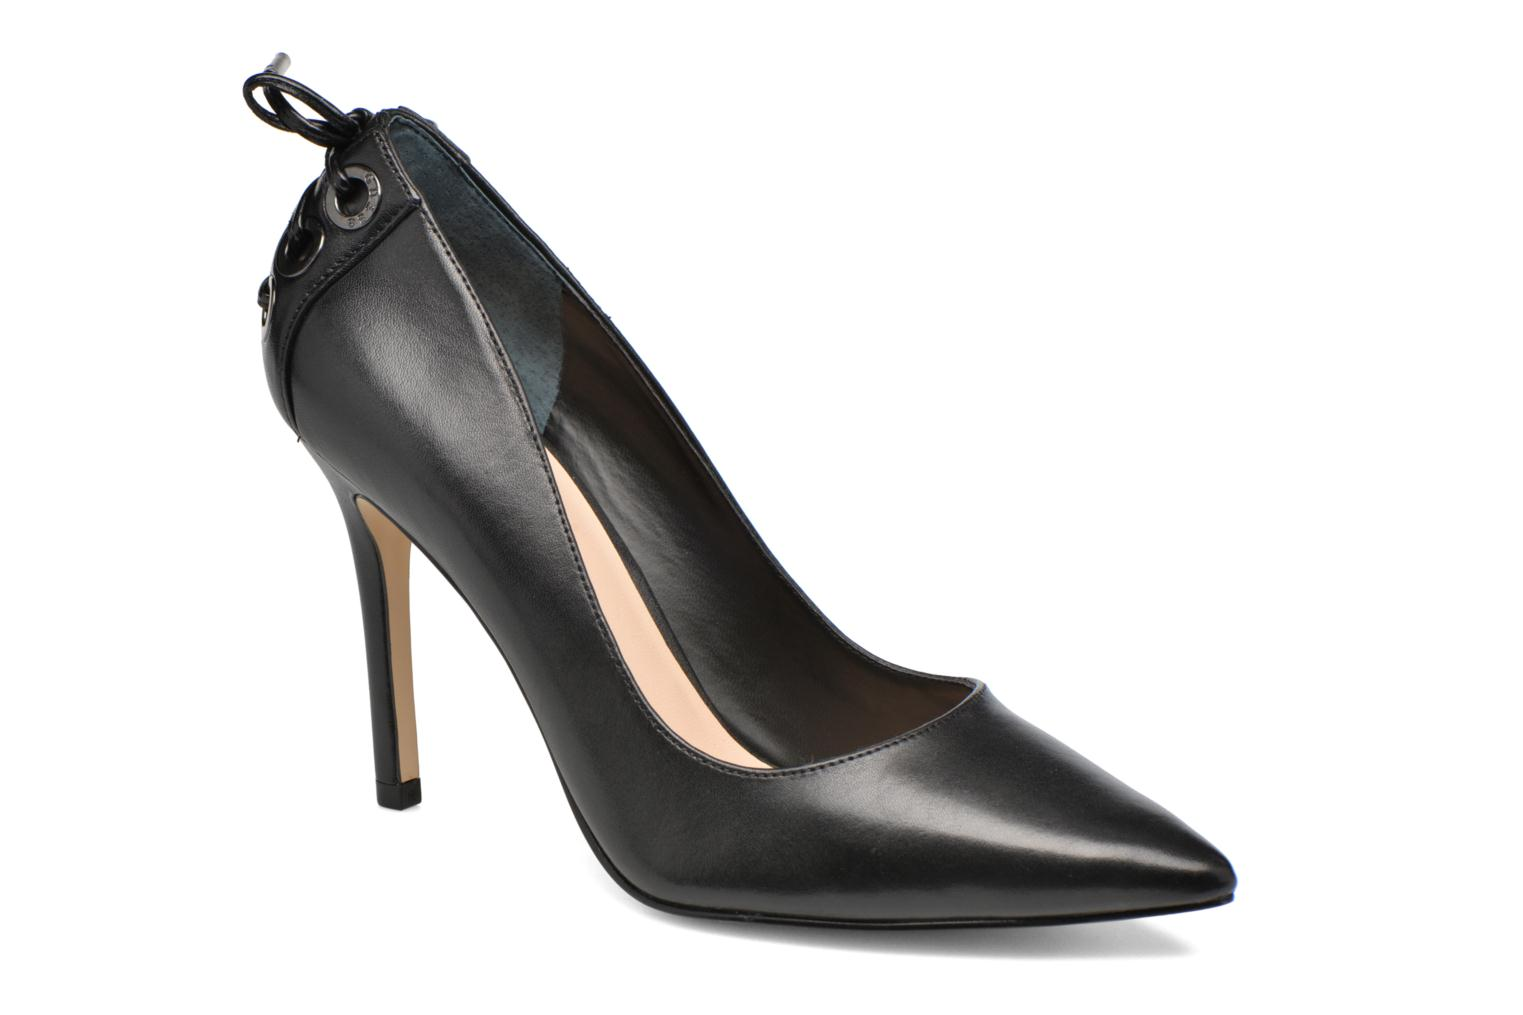 Marques Chaussure luxe femme Guess femme Bristol Black